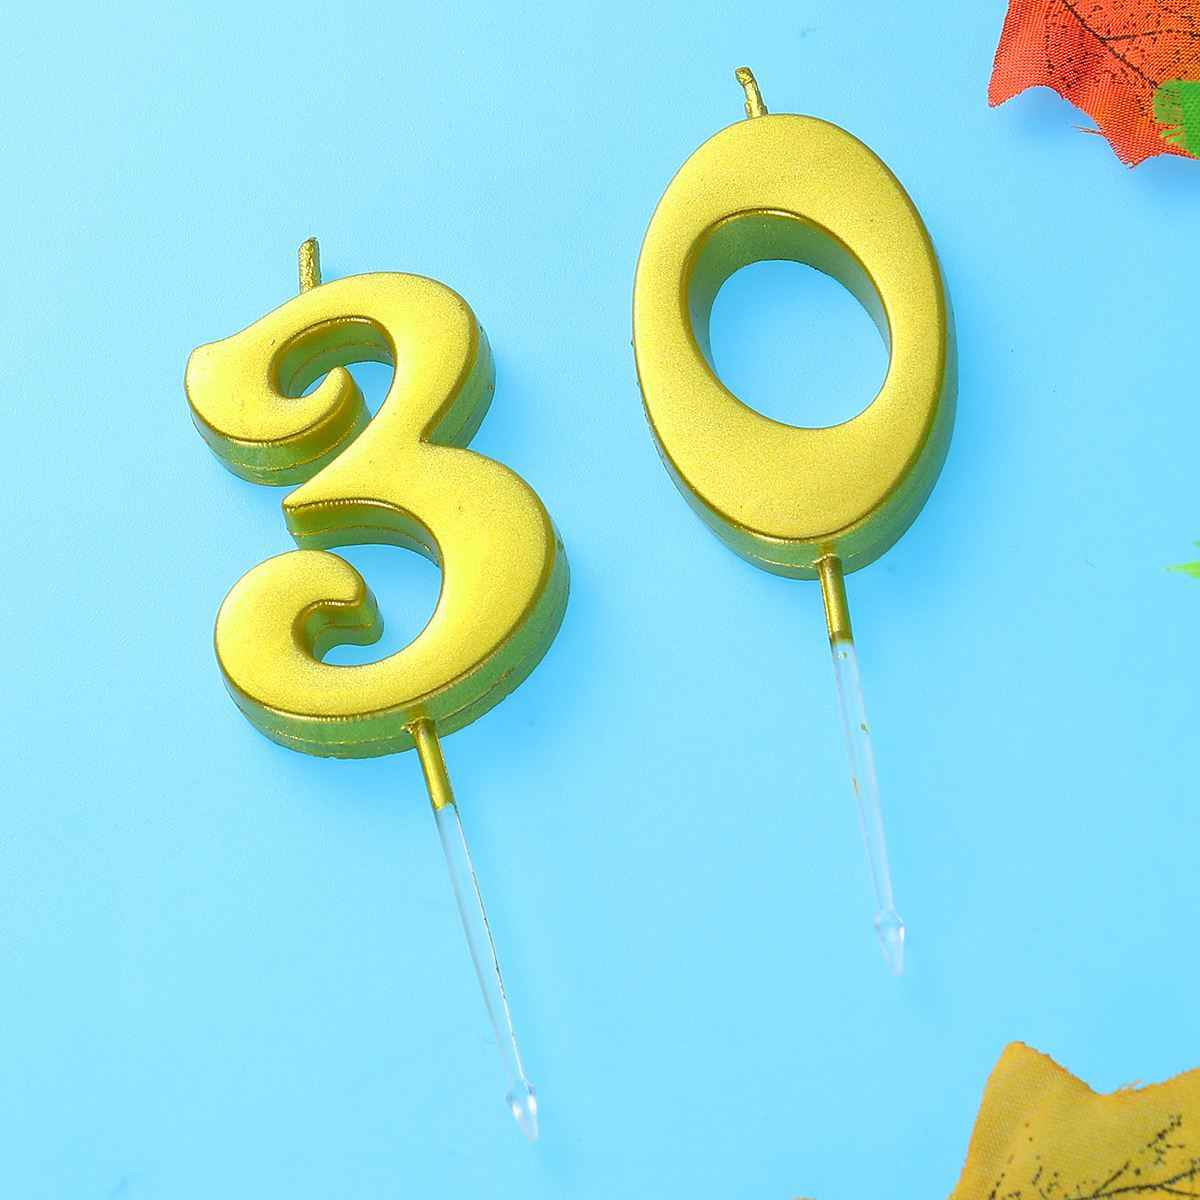 2pcs 30 Birthday Candle Number Decoration Bithday Cake Topper Candles Party Supplies